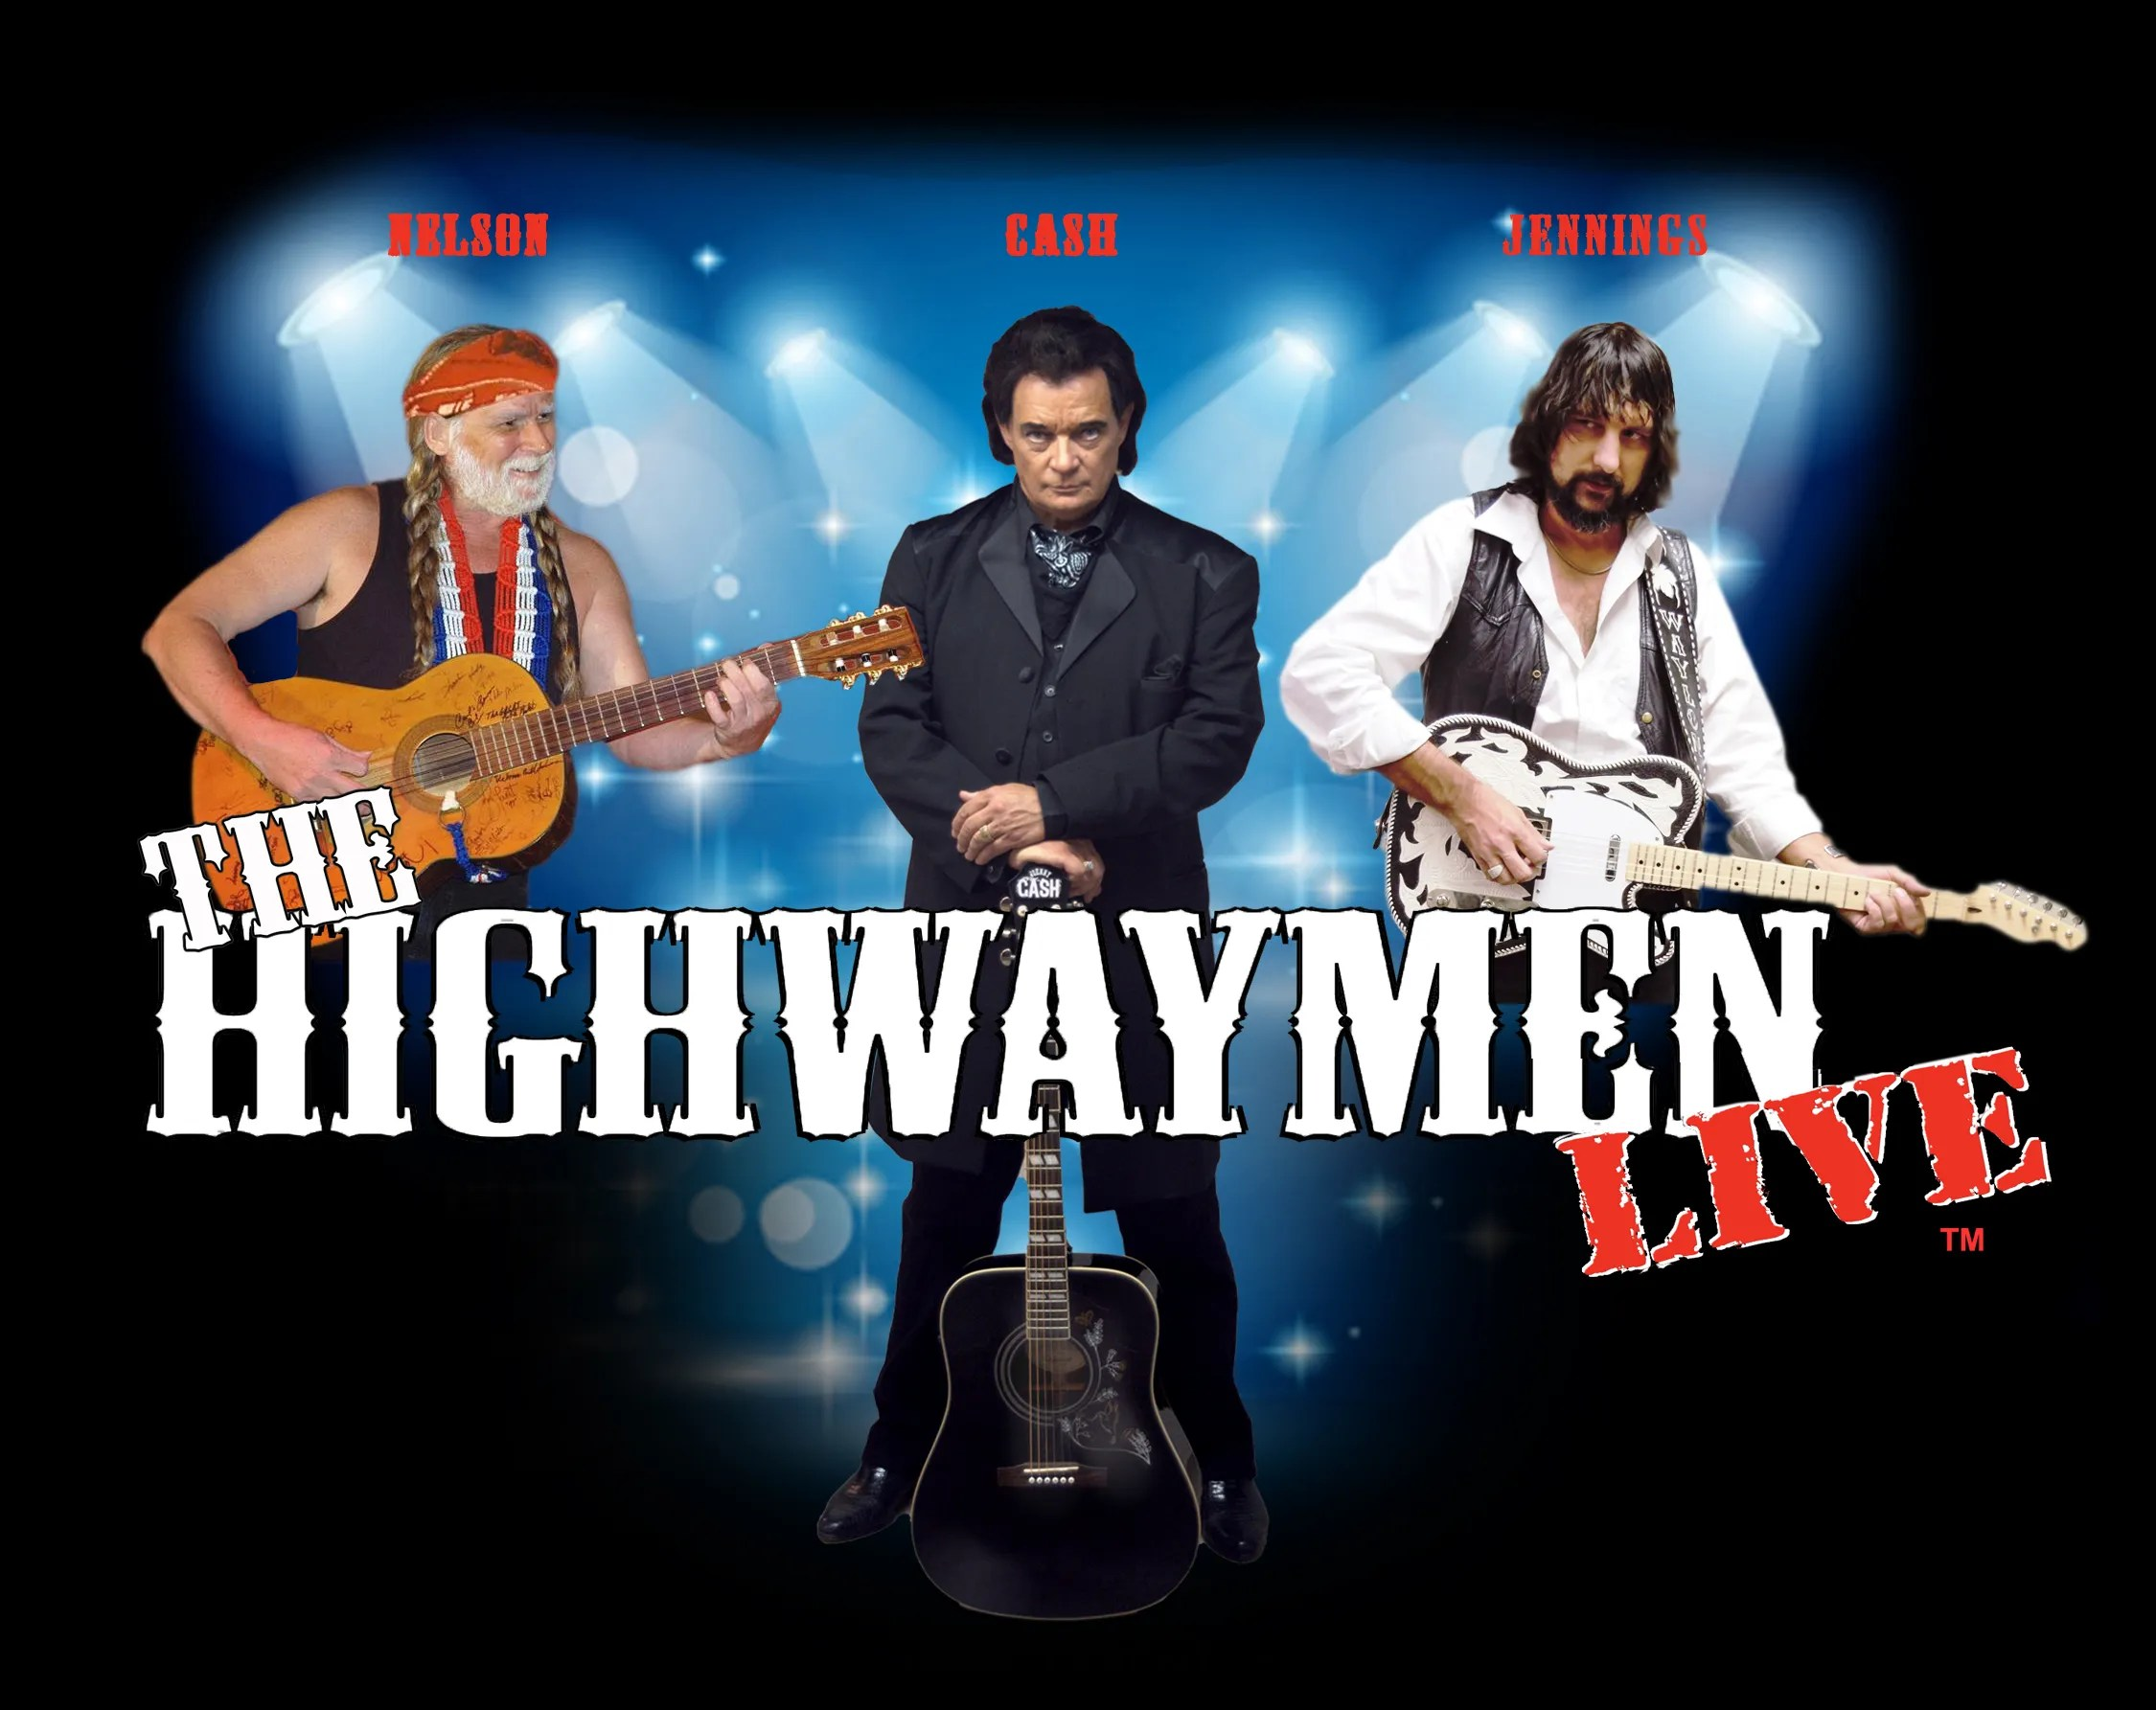 Manitowoc Capitol Civic Centre Brings The Highwaymen Live To Stage Jan